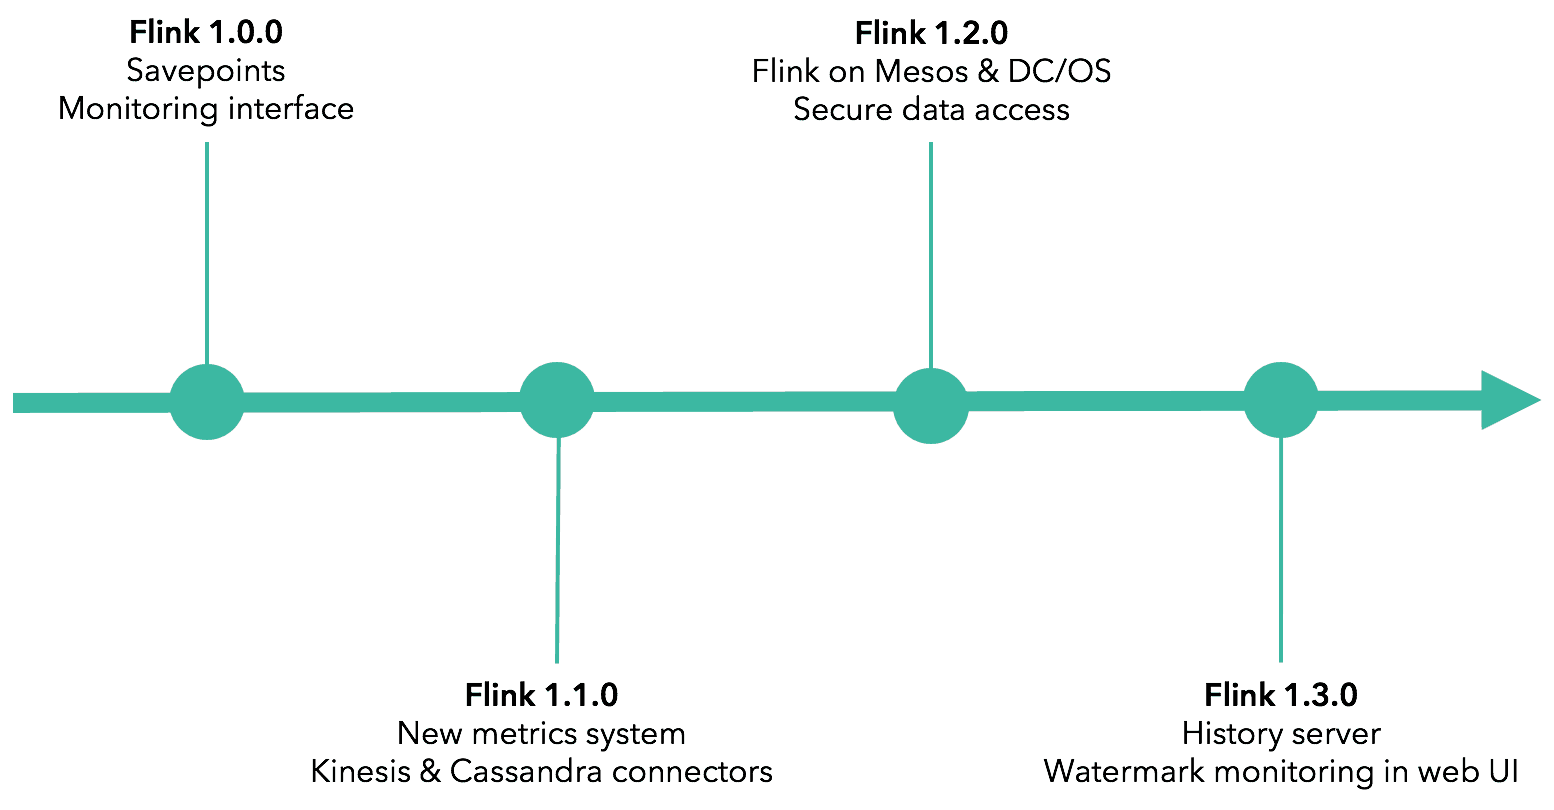 Apache Flink application management, monitoring, and deployment timeline